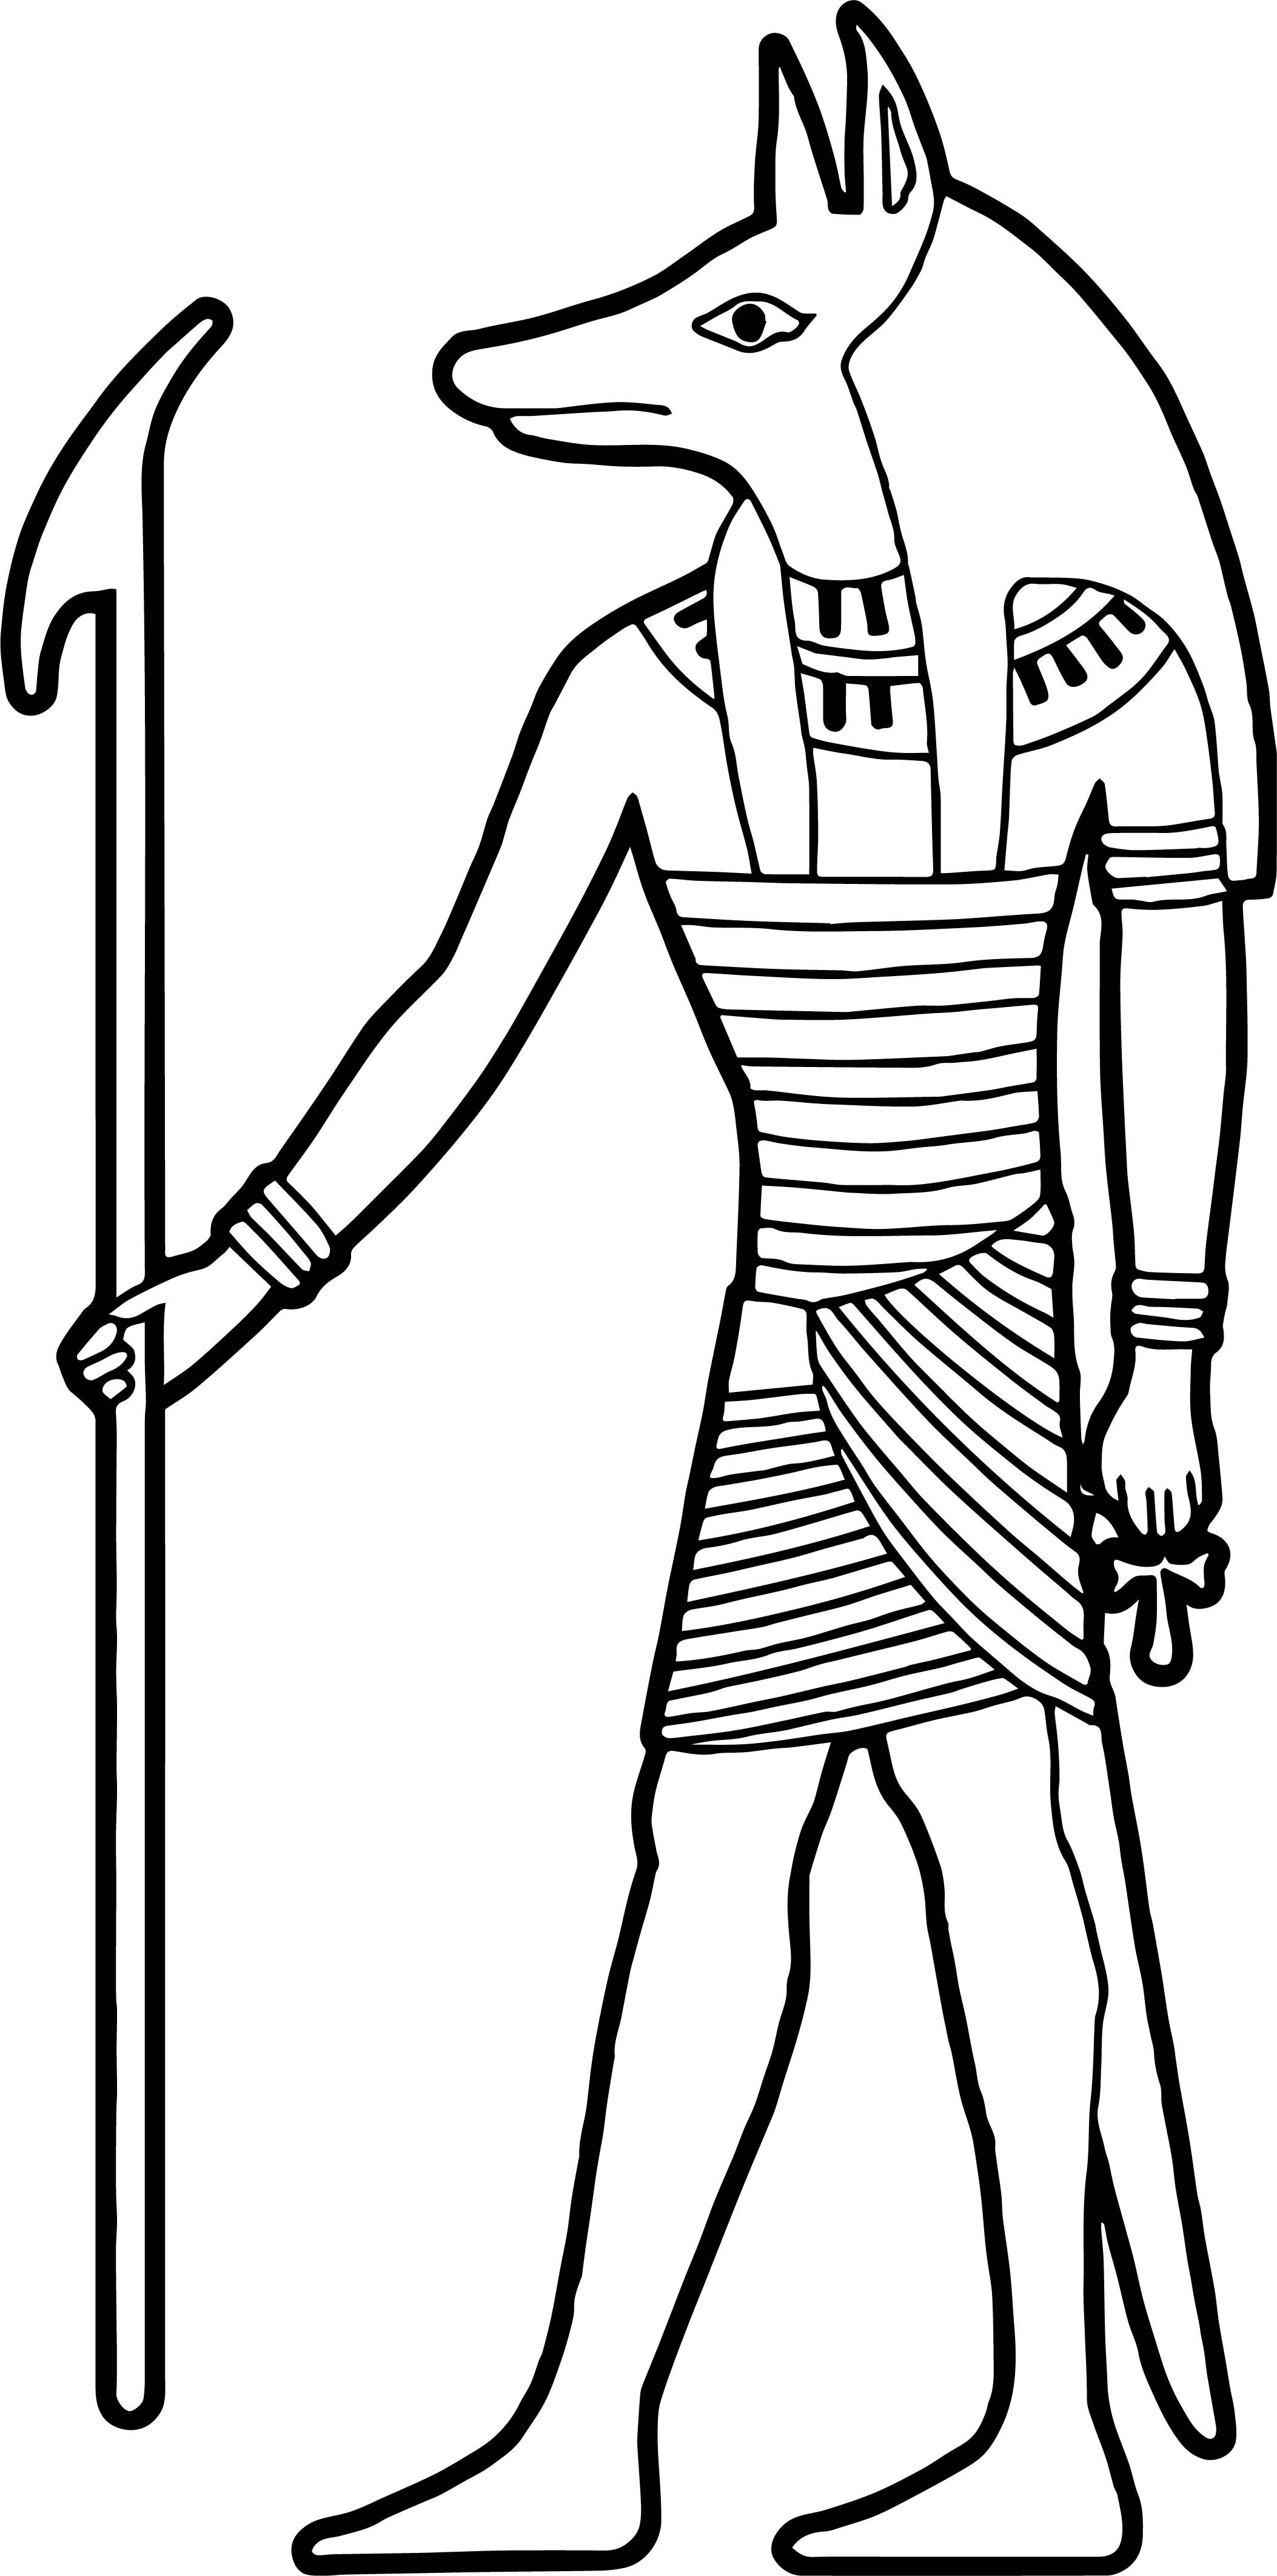 Cool Ancient Egypt Animal Face Statue Coloring Page Egypt